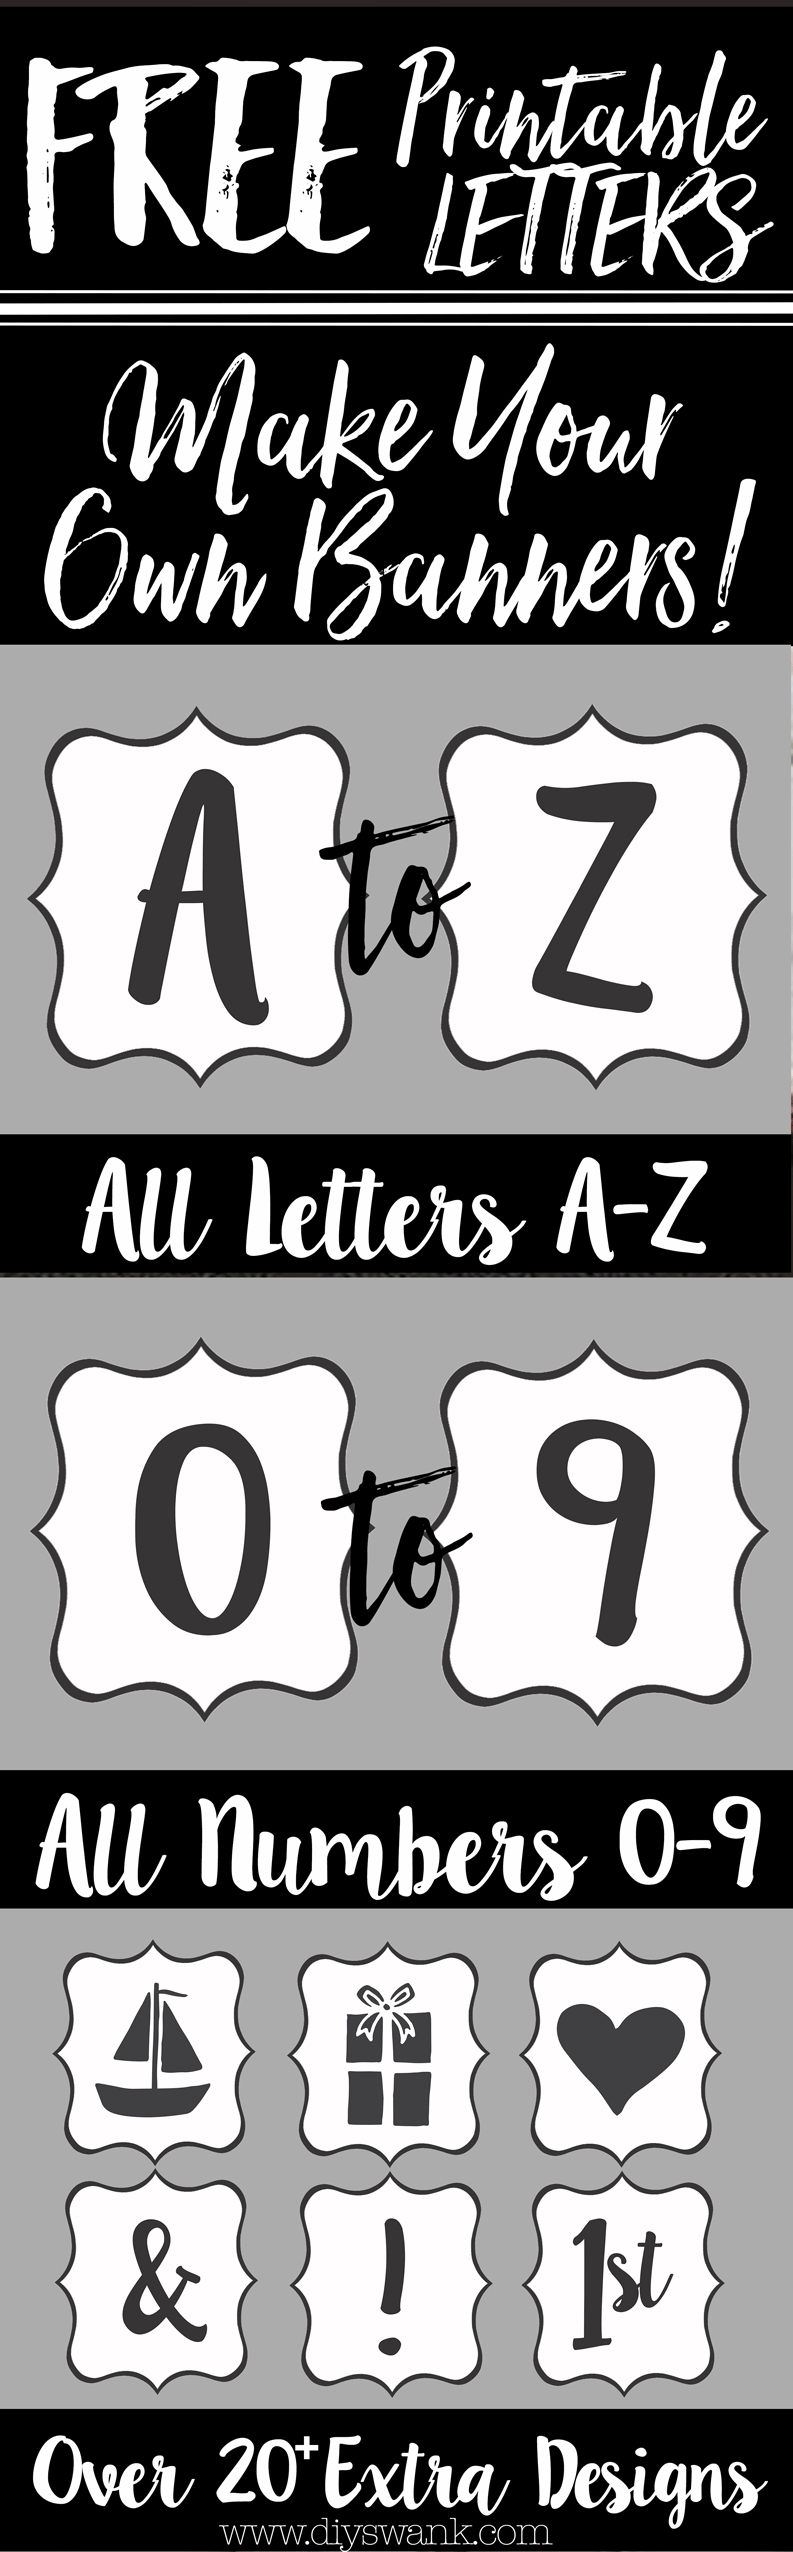 1418 Best Diy Swank Images | Christmas Deco, Christmas Decor - Diy Swank Free Printable Letters